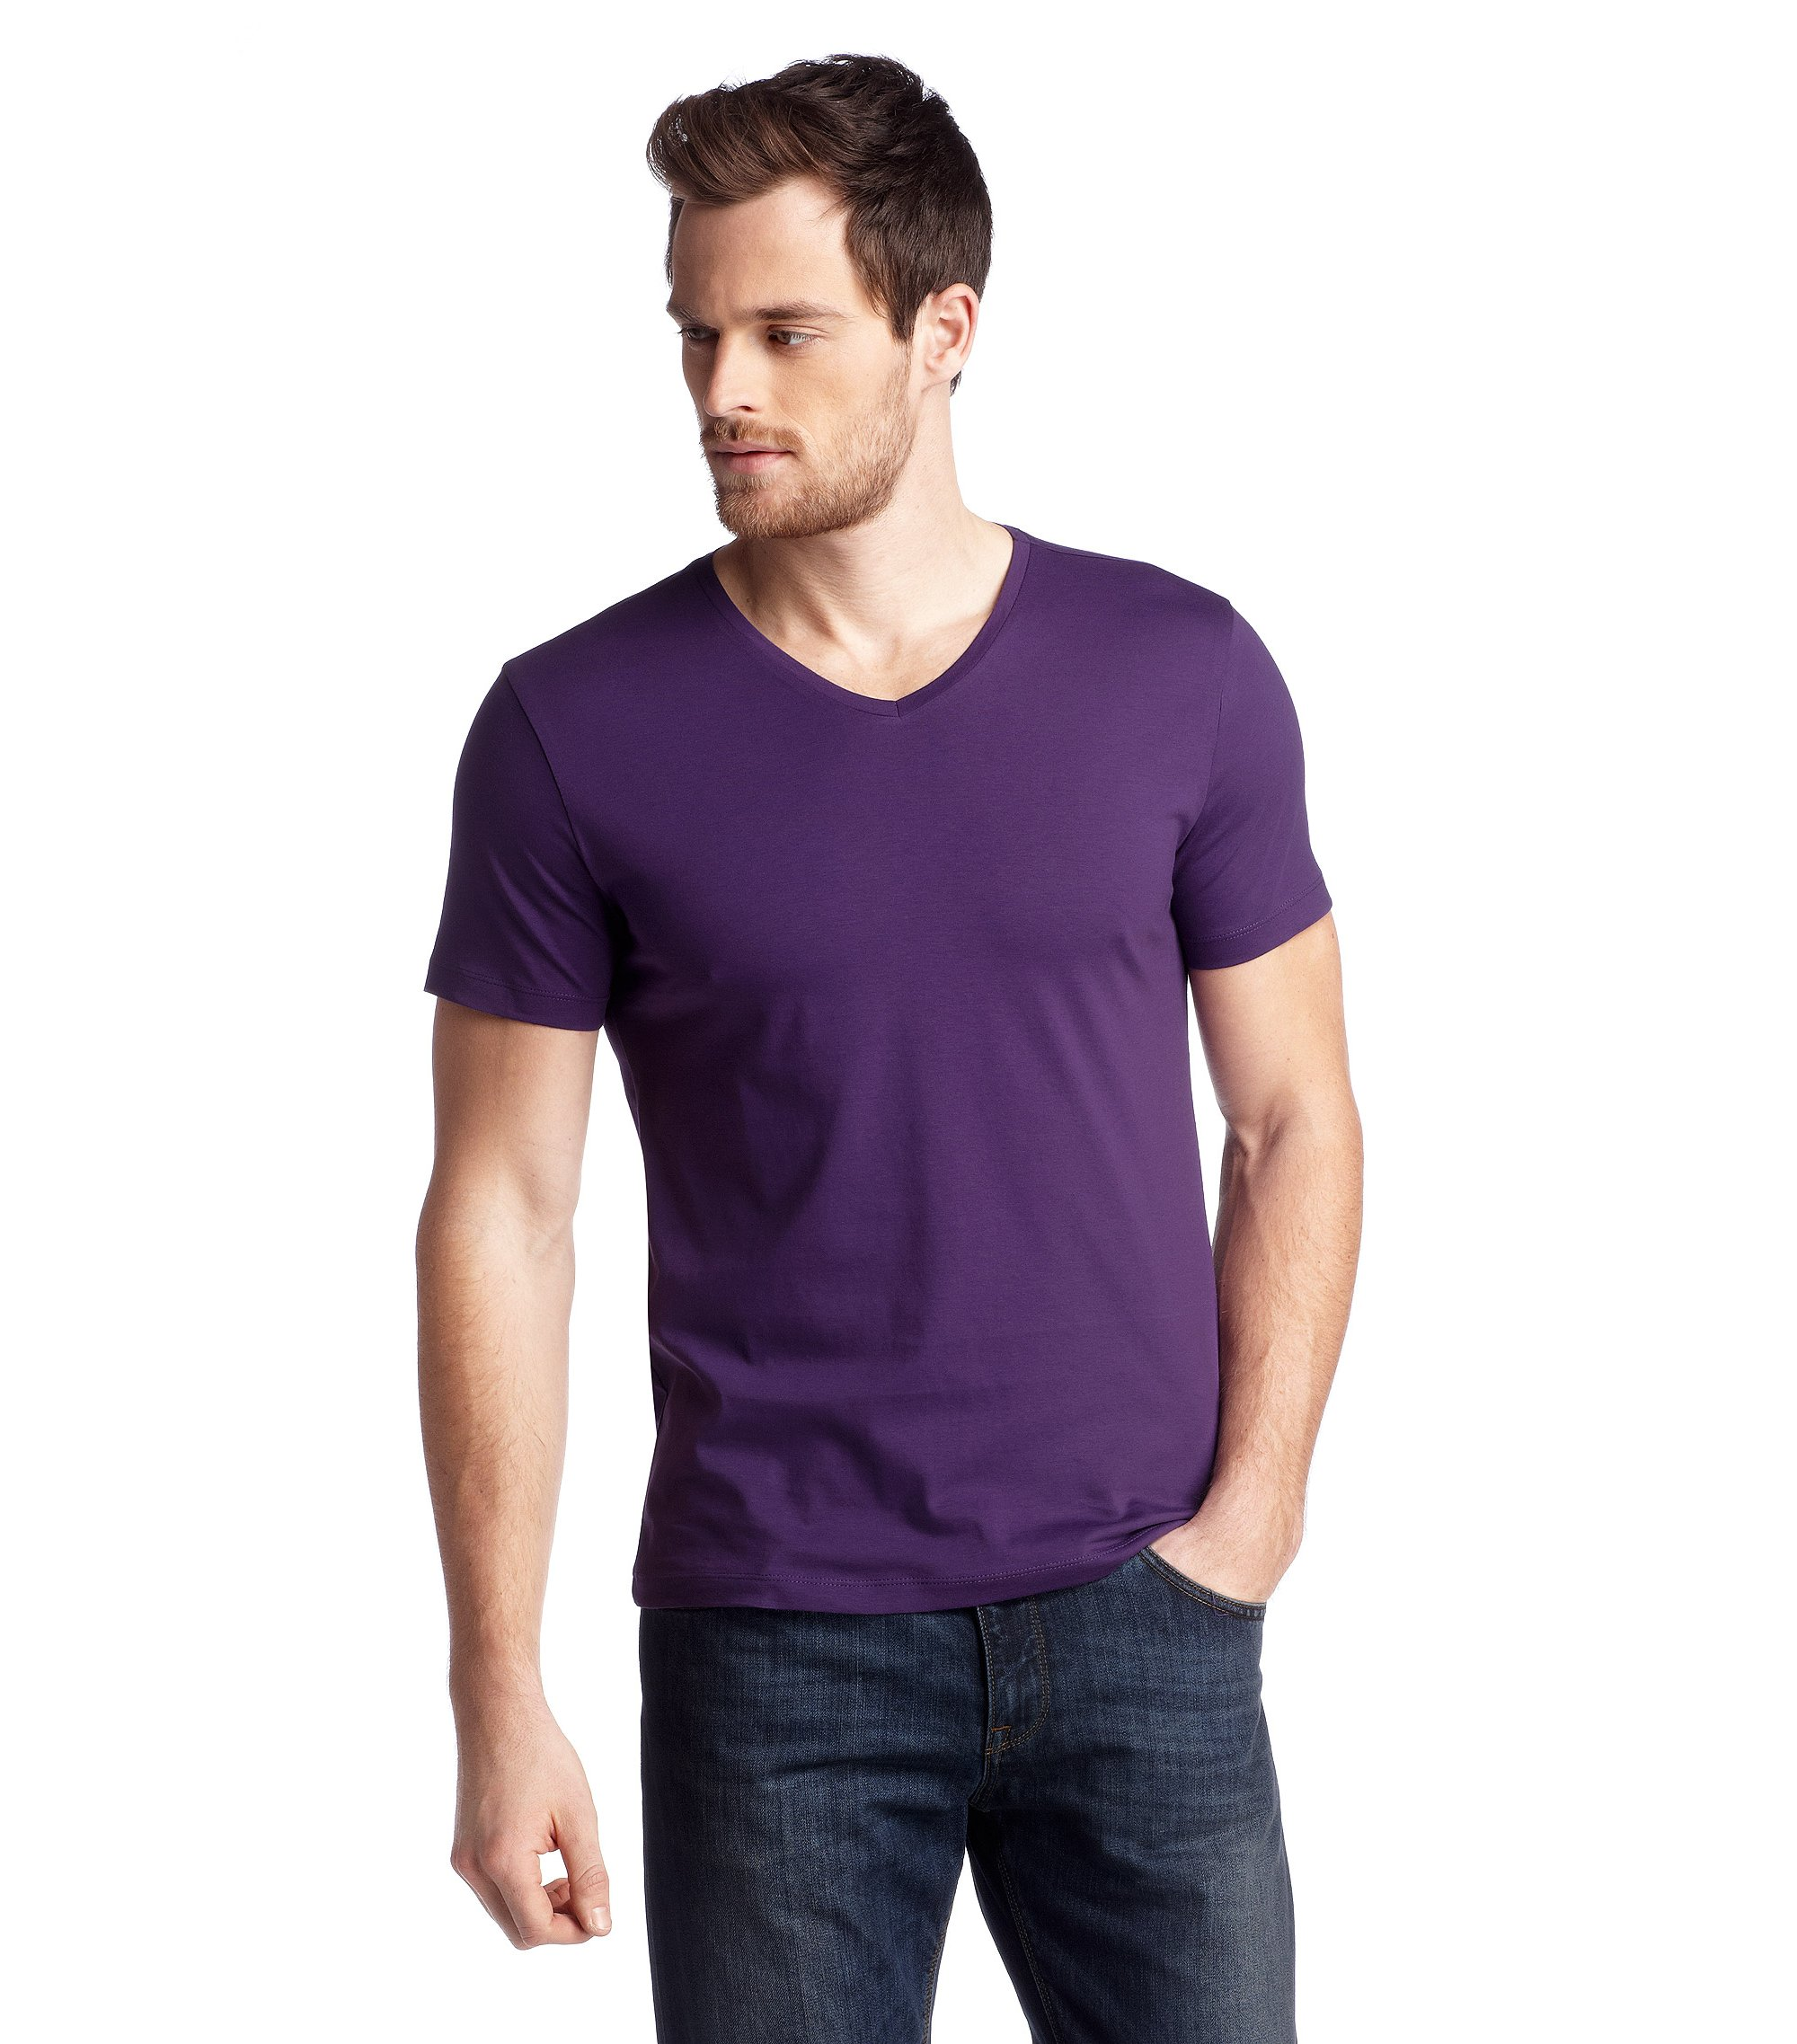 T-shirt 'Canistro 80 Modern Essential', Purple